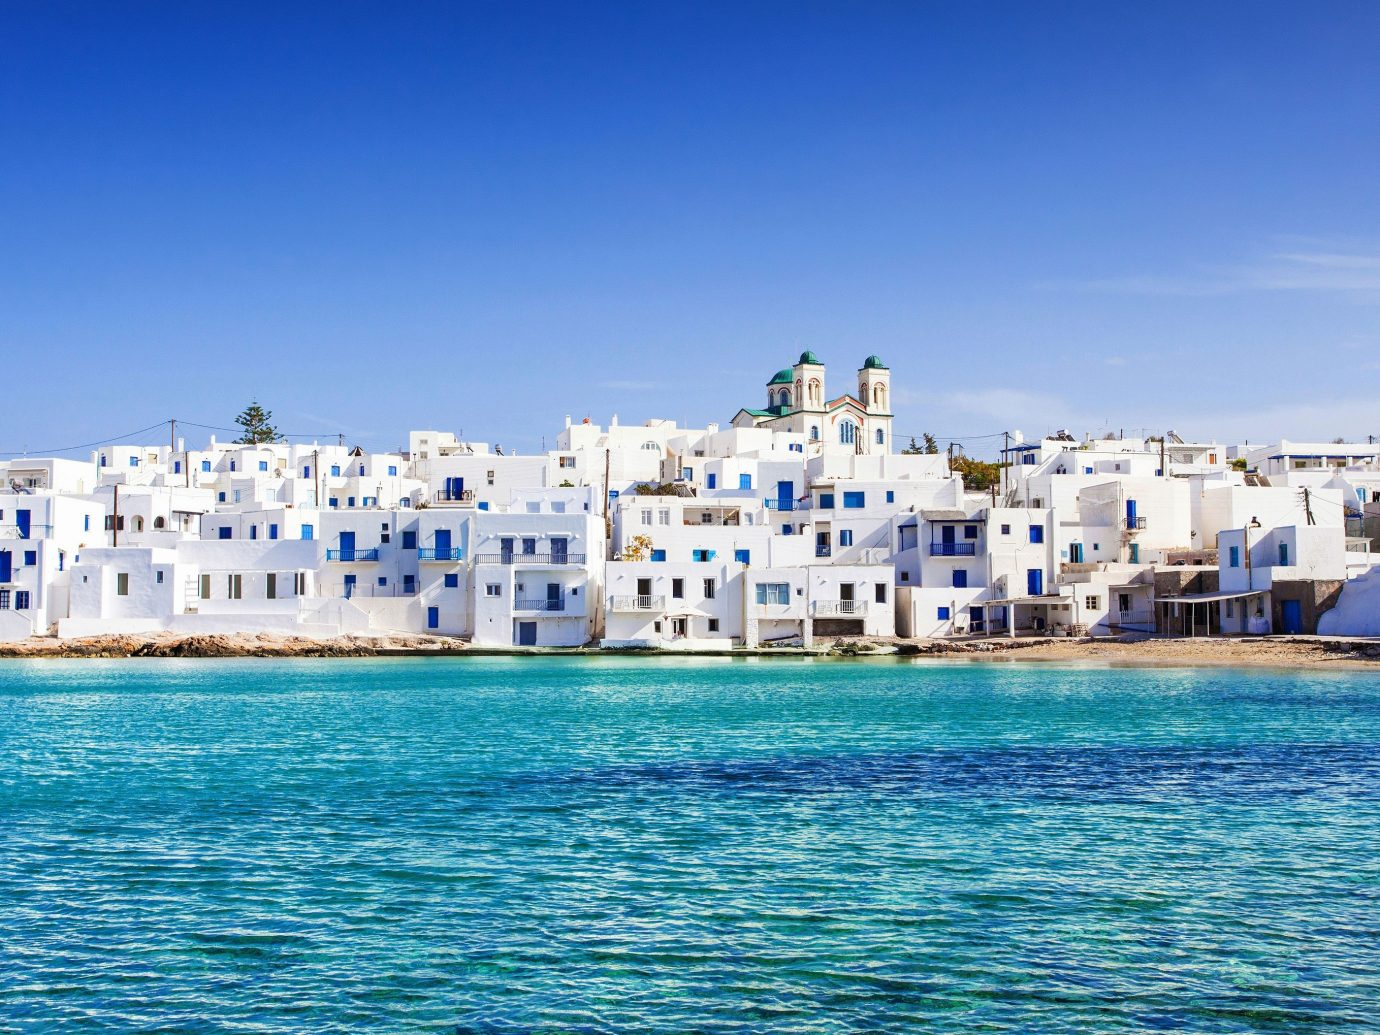 Skyline of Antiparos, Greece